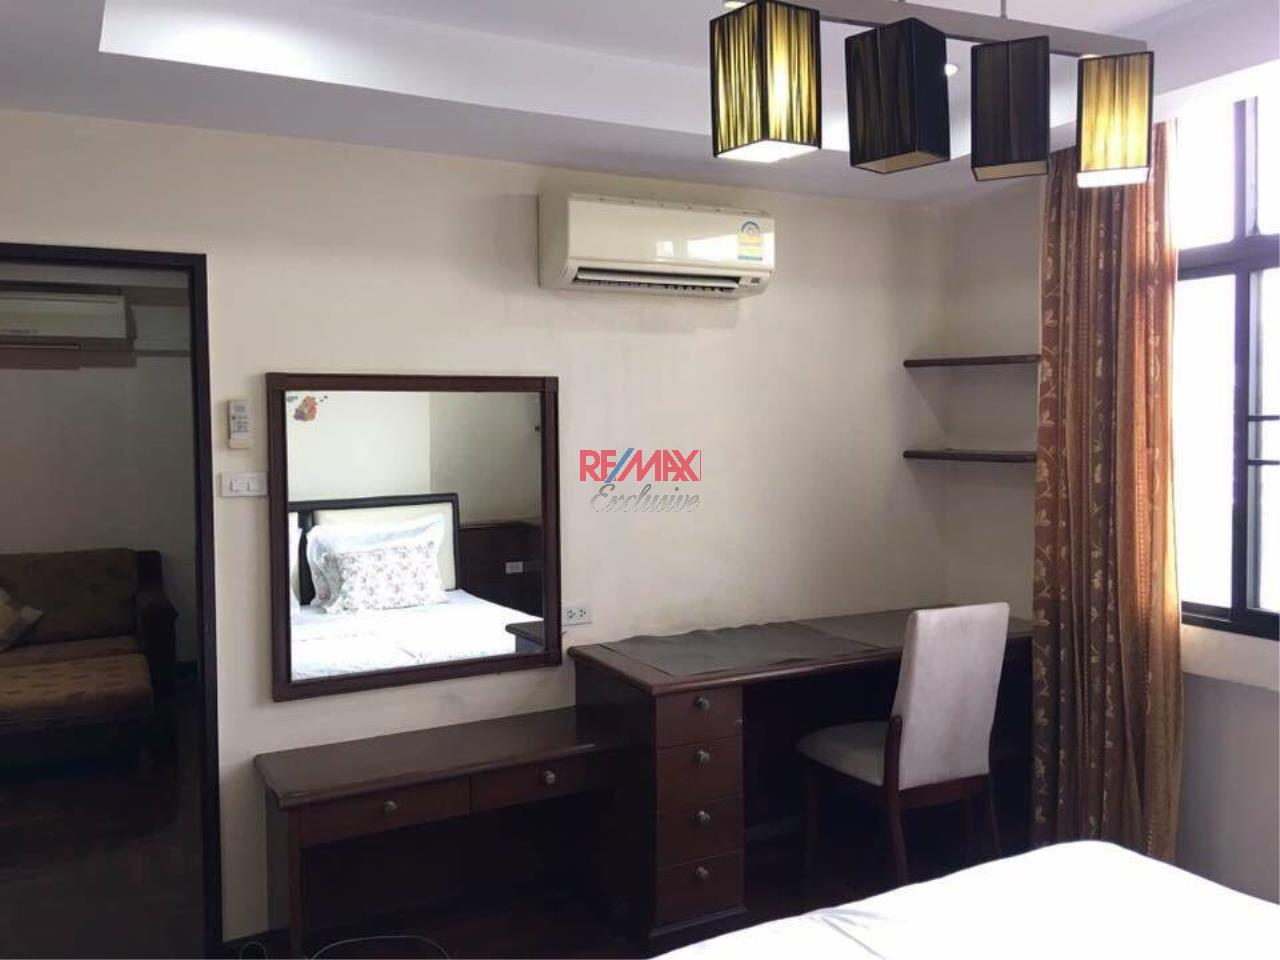 RE/MAX Exclusive Agency's Spacious 2 BR for rent near BTS Onnut, Sukhumvit 50. 5